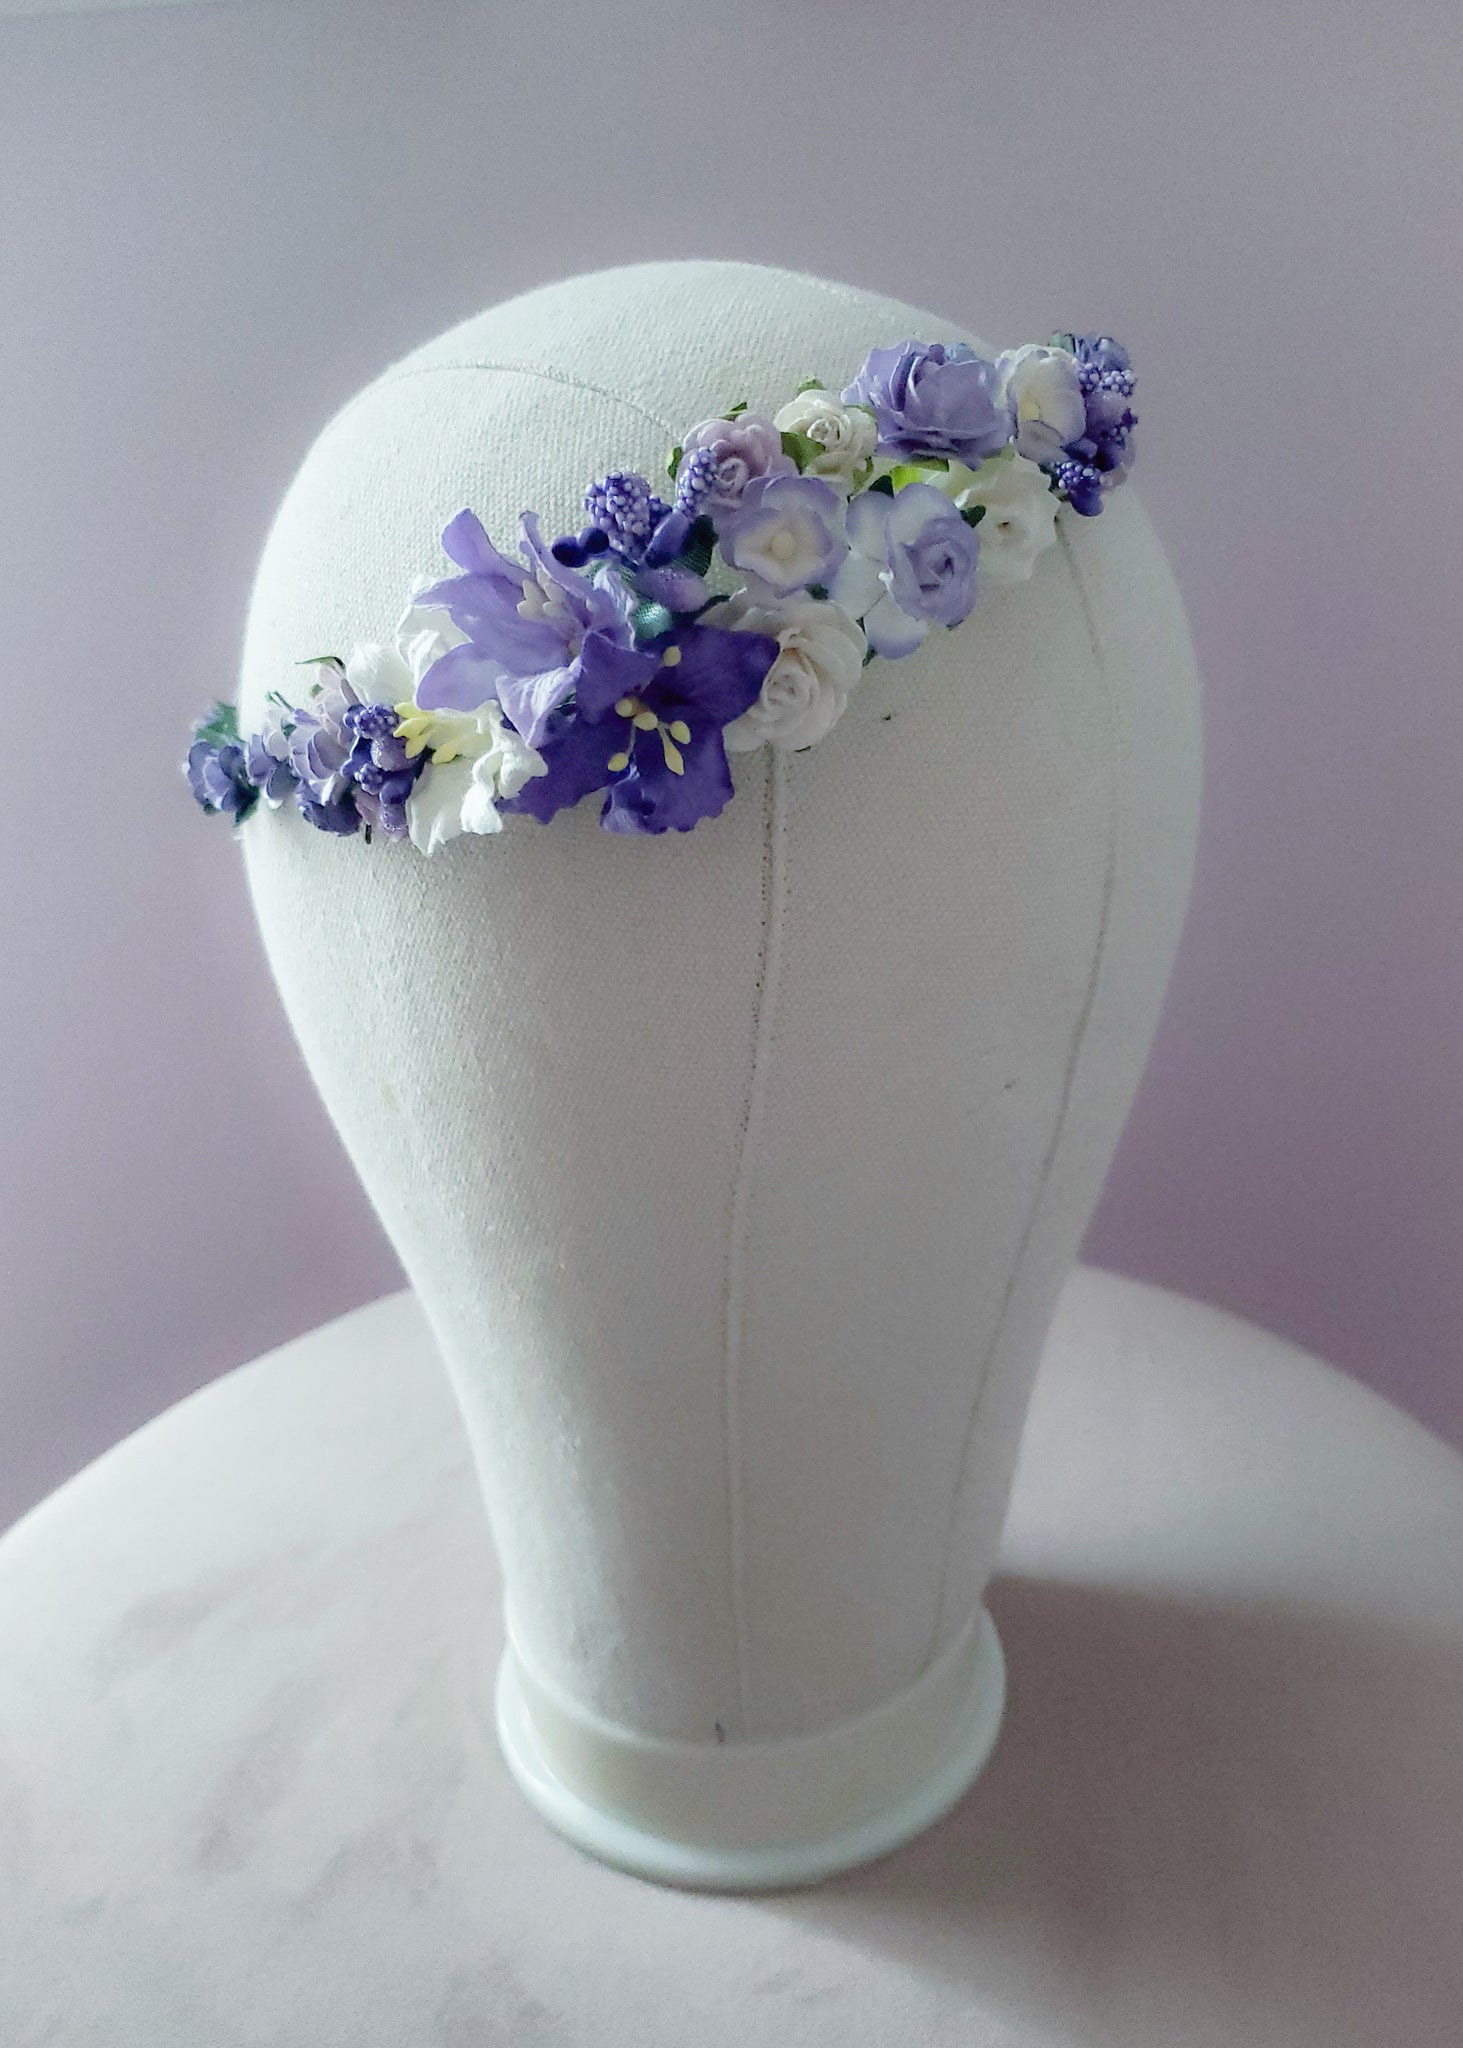 Shades of Lavender Floral Crown